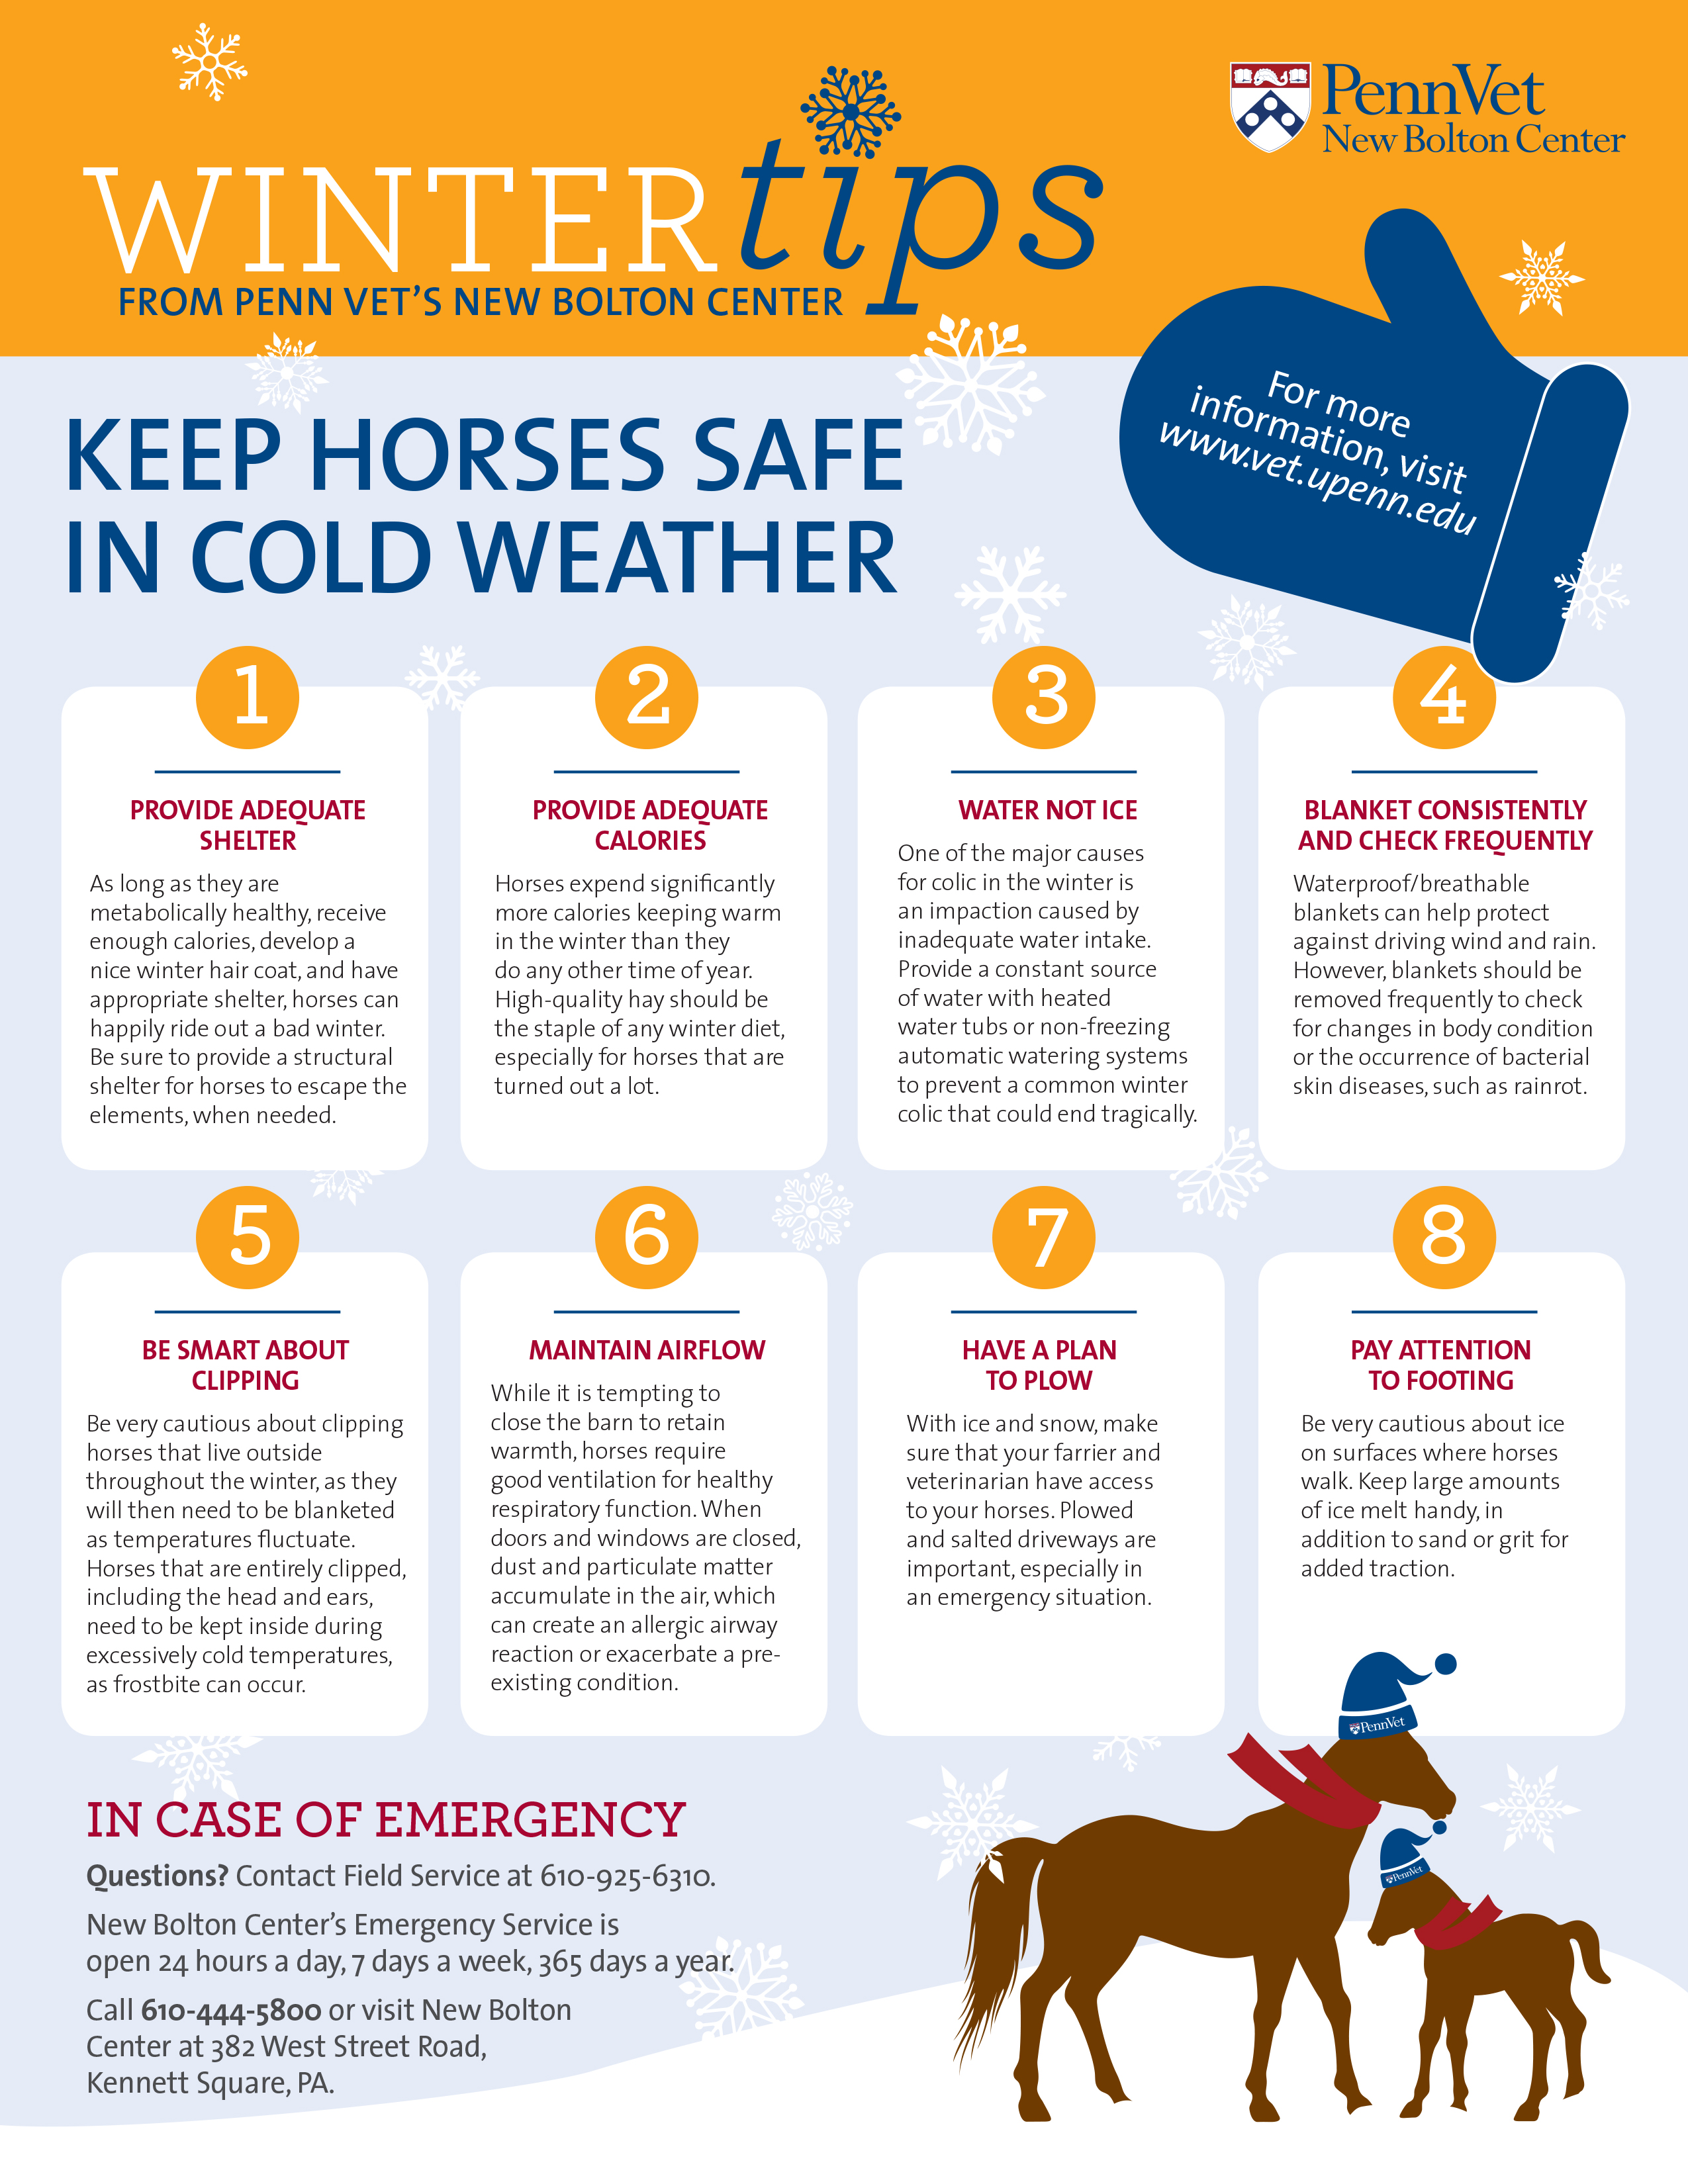 Penn Vet Winter Tips for Horses